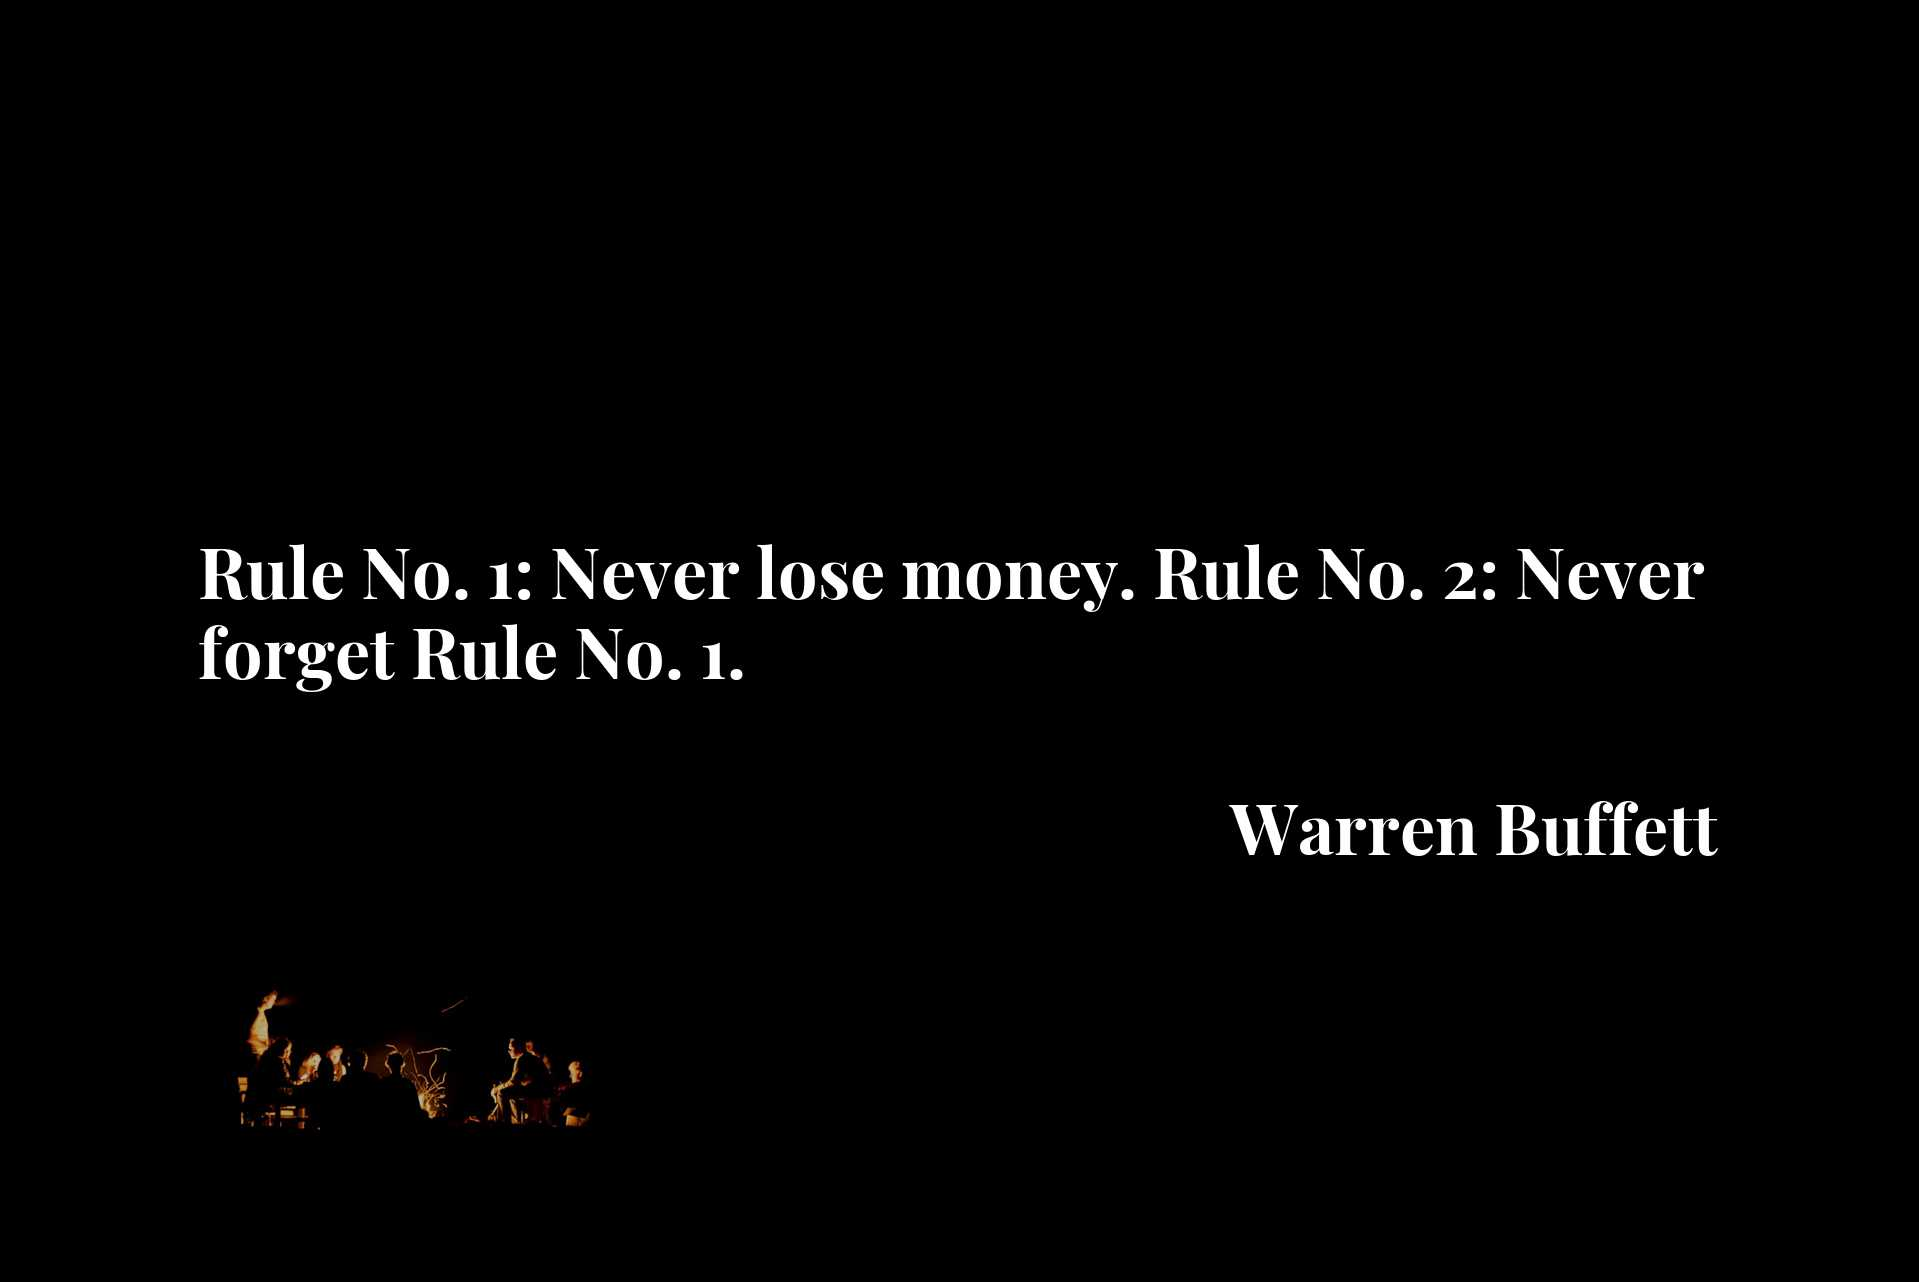 Rule No. 1: Never lose money. Rule No. 2: Never forget Rule No. 1.